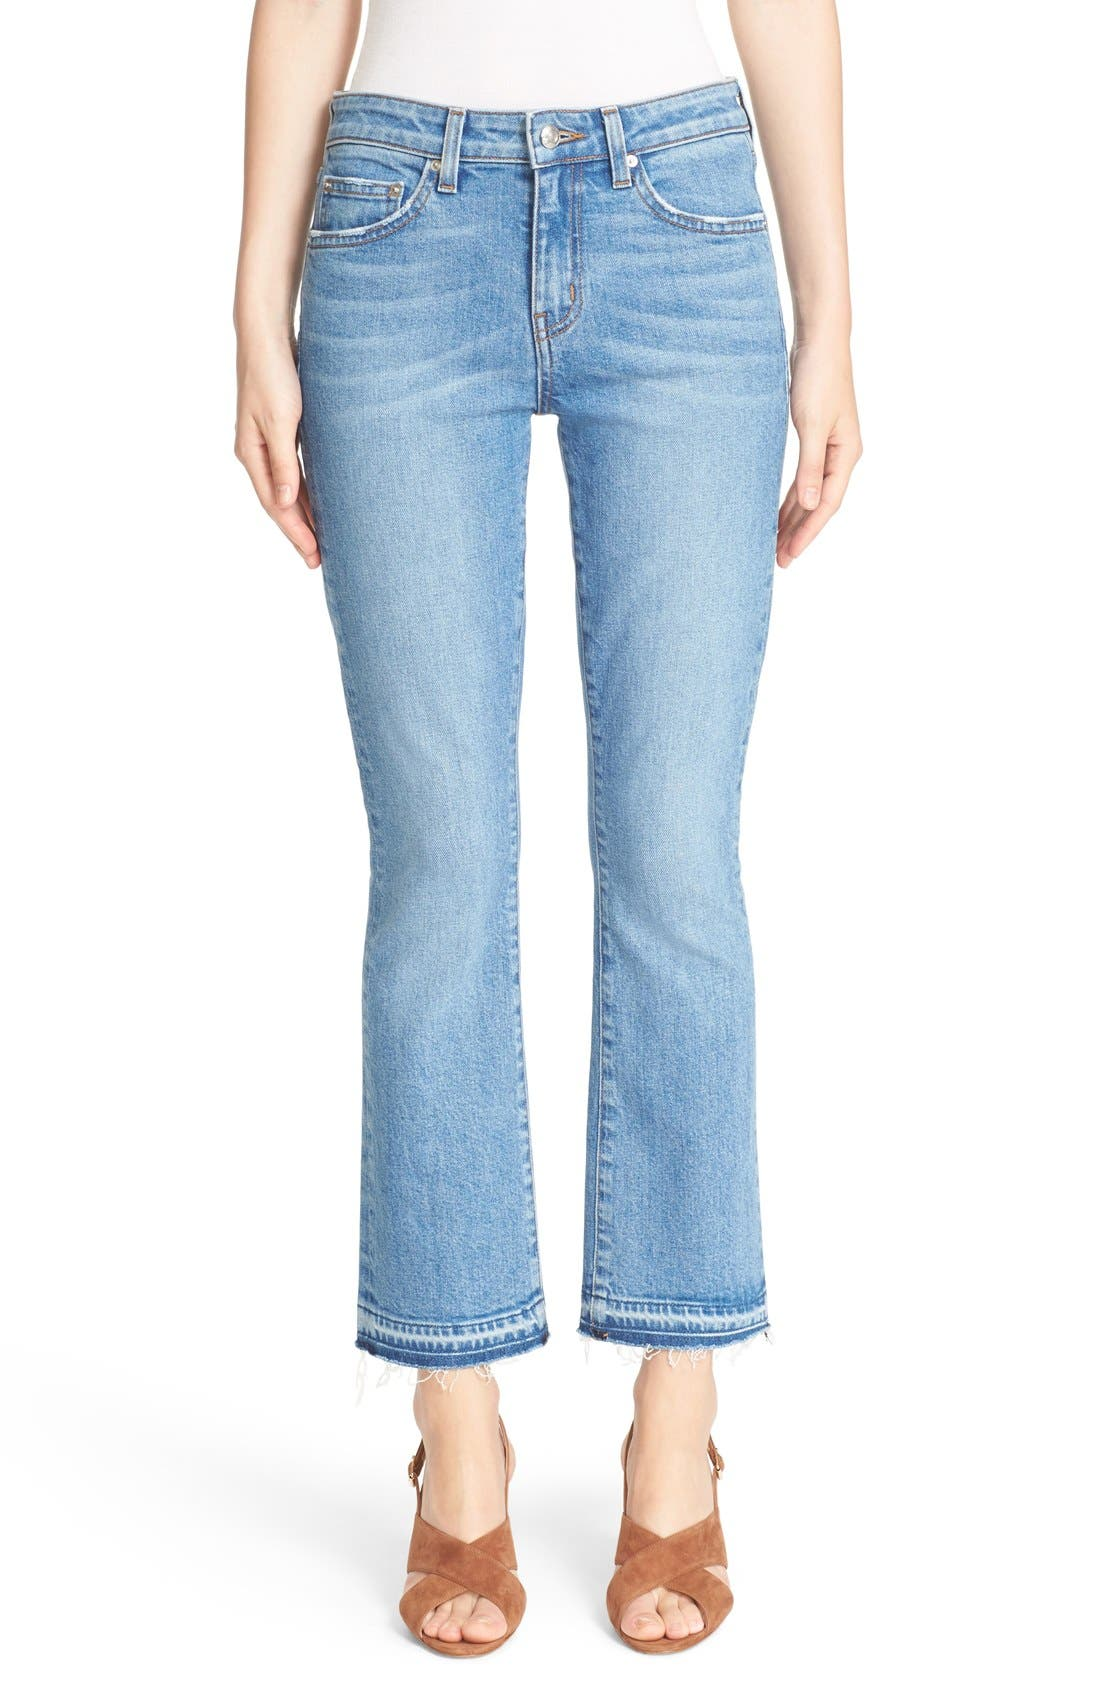 'Gia' Crop Flare Jeans,                         Main,                         color, Light Wash